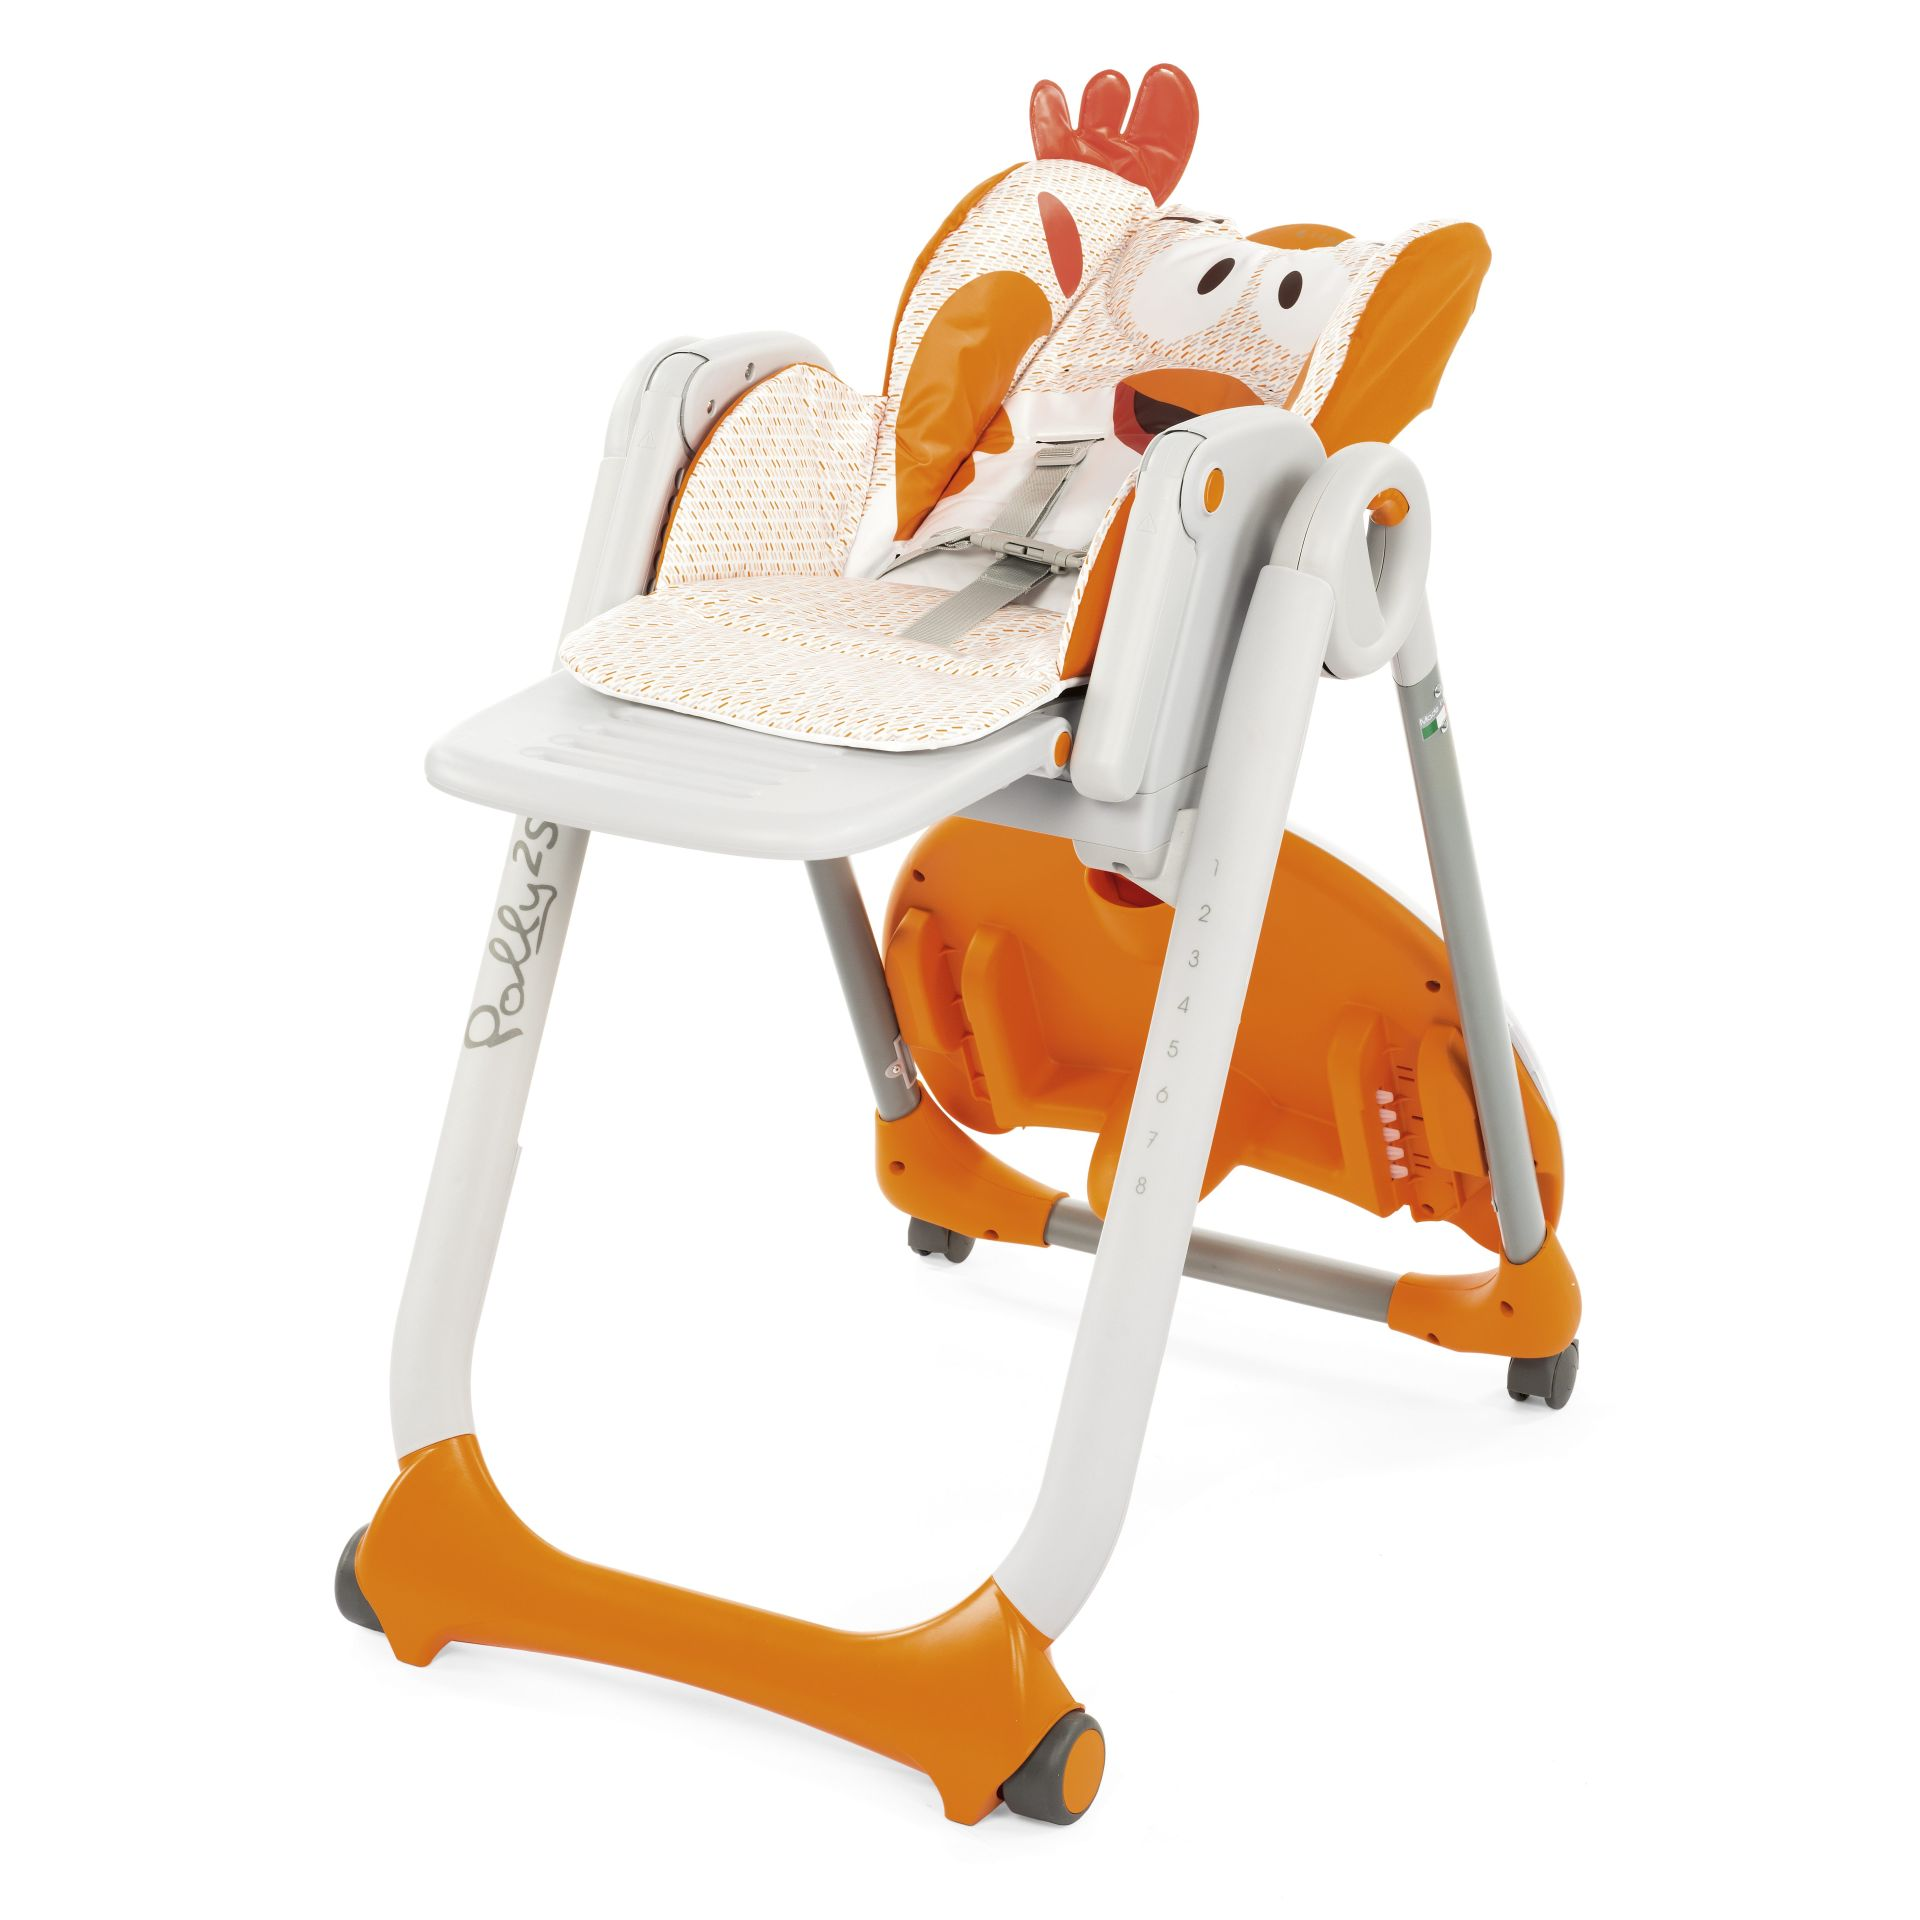 Chicco Chaise Haute Polly 2 Start 2019 Fancy Chicken Acheter Sur